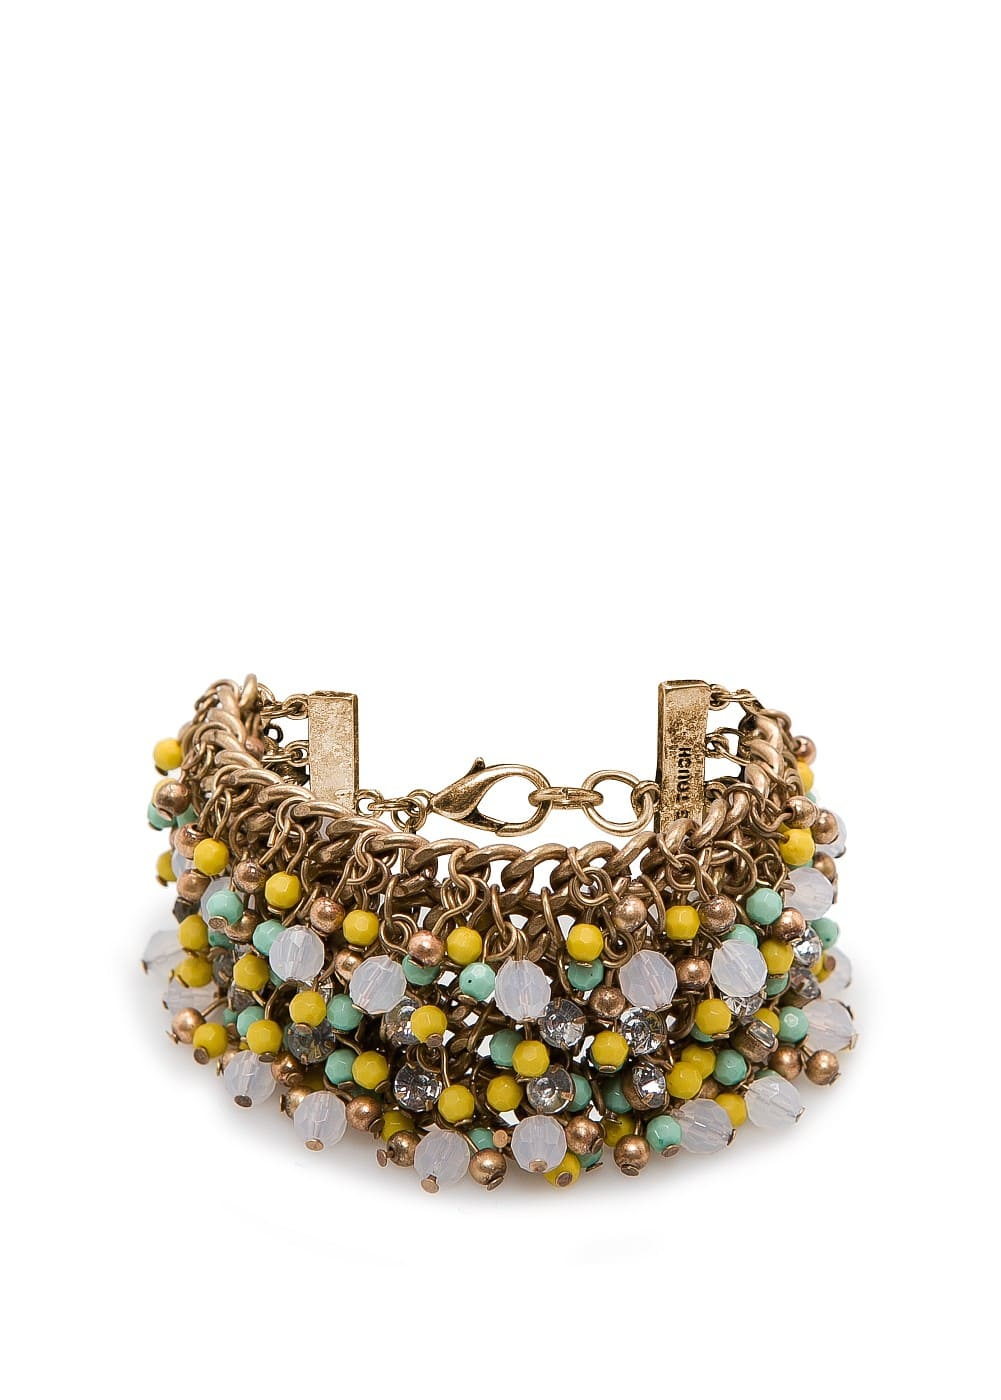 Beaded chains bracelet